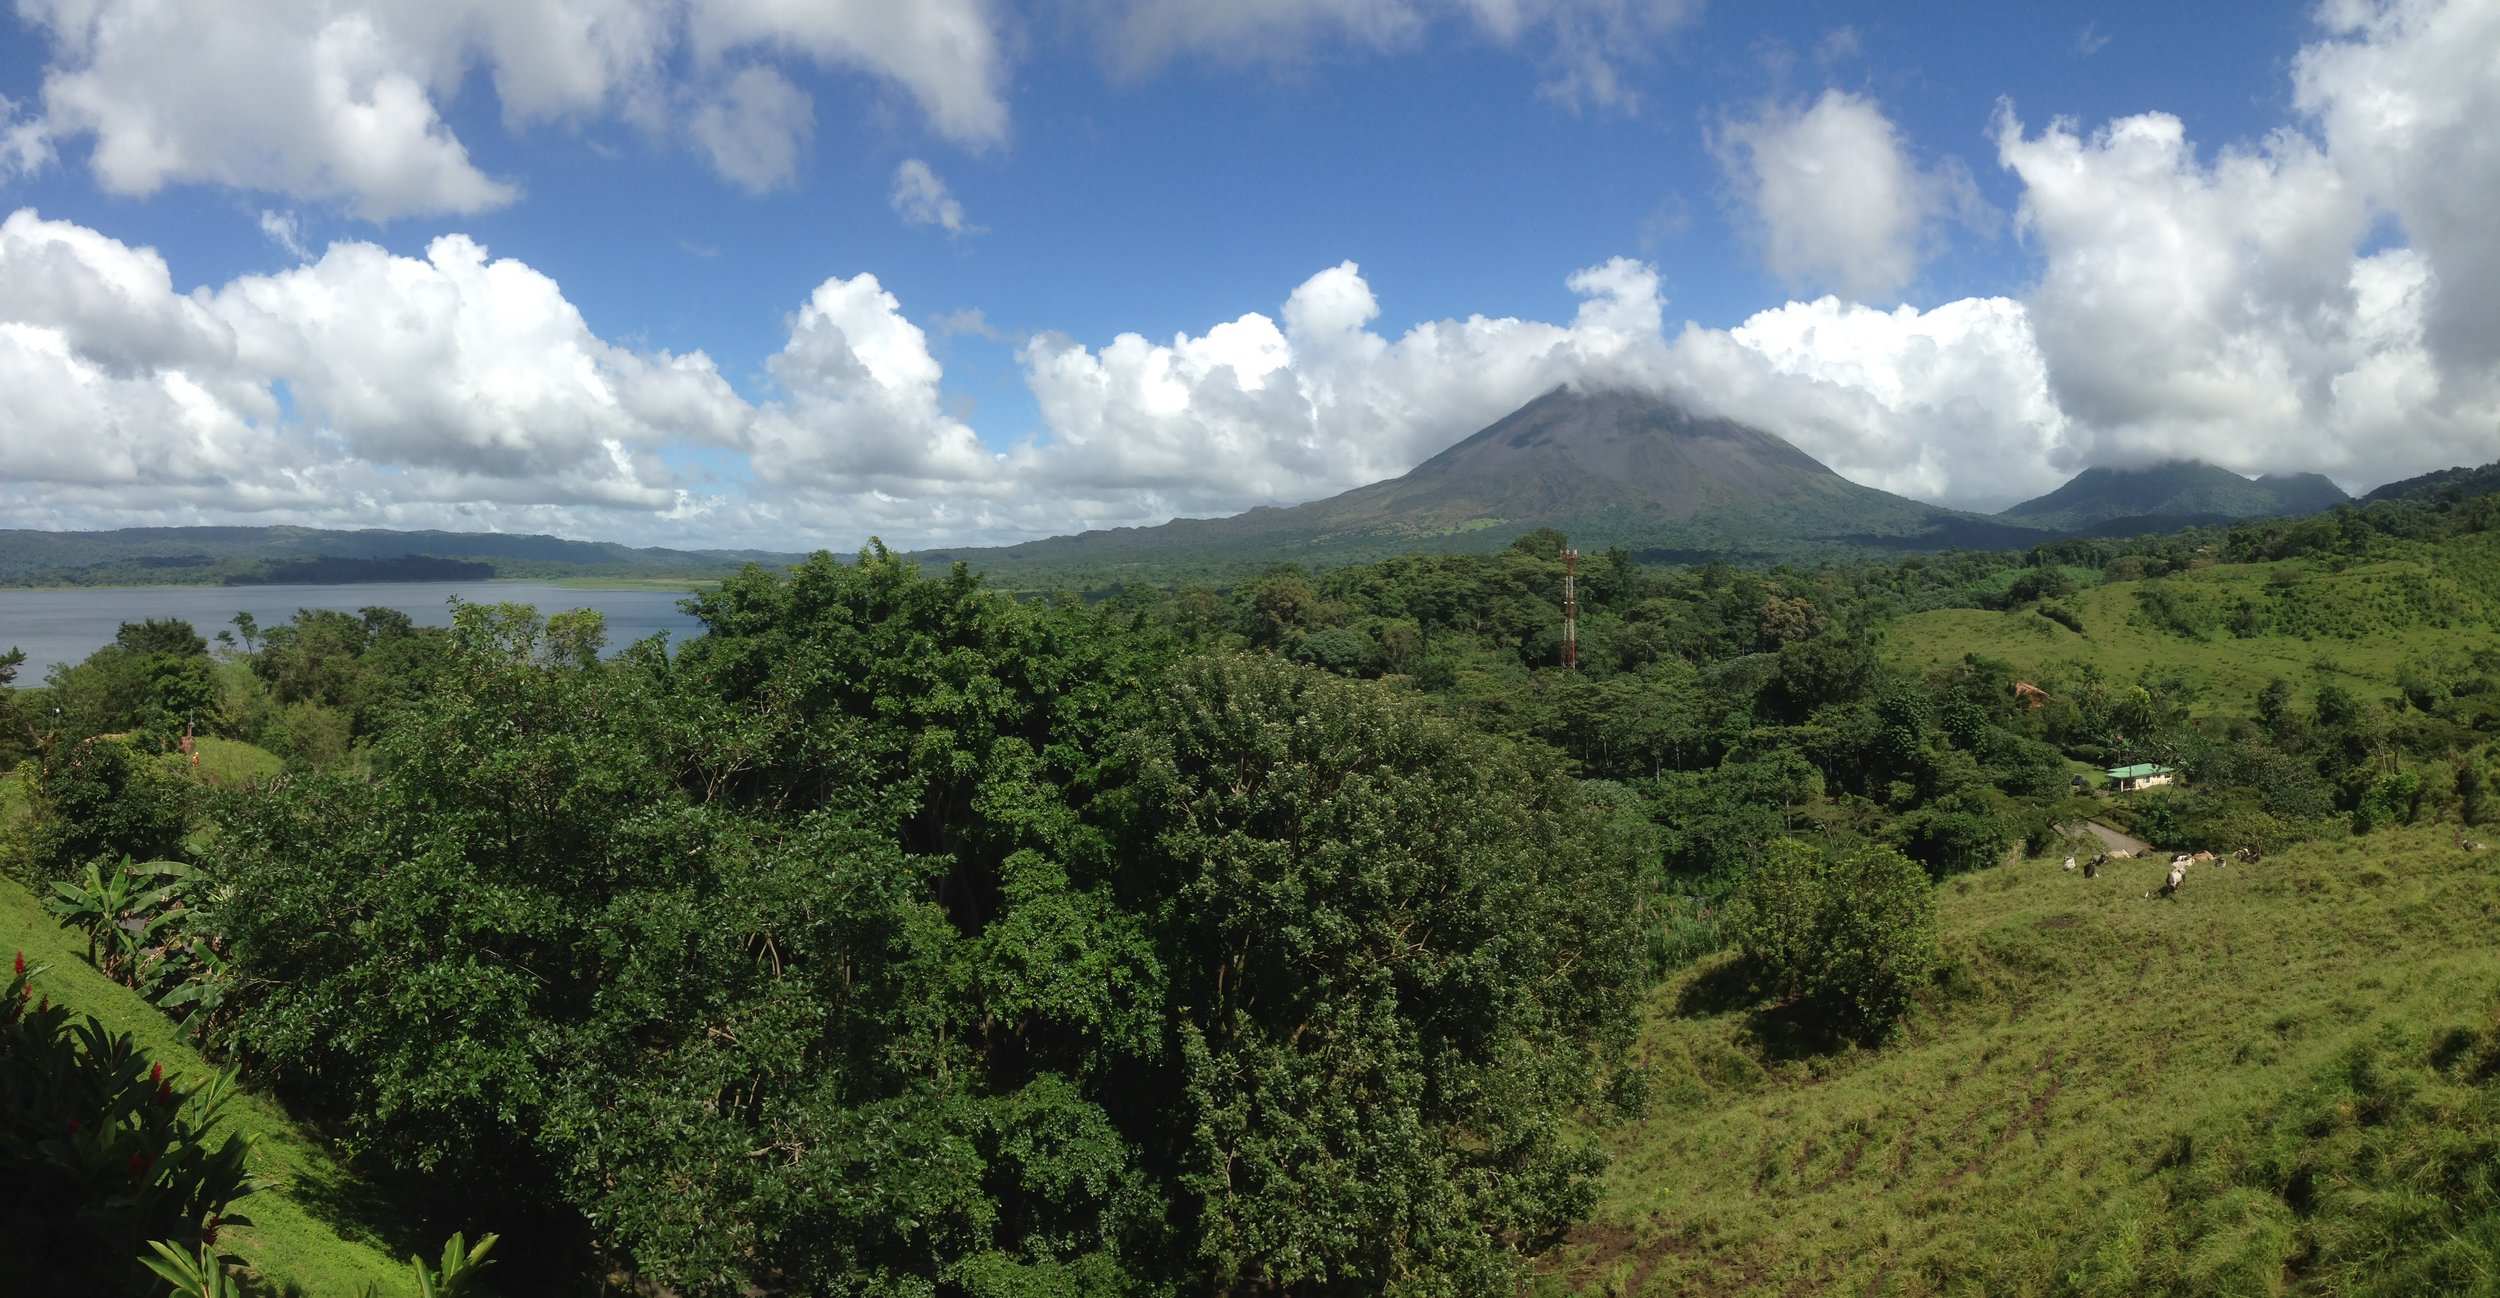 Arenal Volcano to the right and Laguna de Arenal to the left. The Arenal cloud forest and town of Fortuna are a great destination for one or two days. The Tabacon hot springs are a must, and you can hike to the base of the volcano